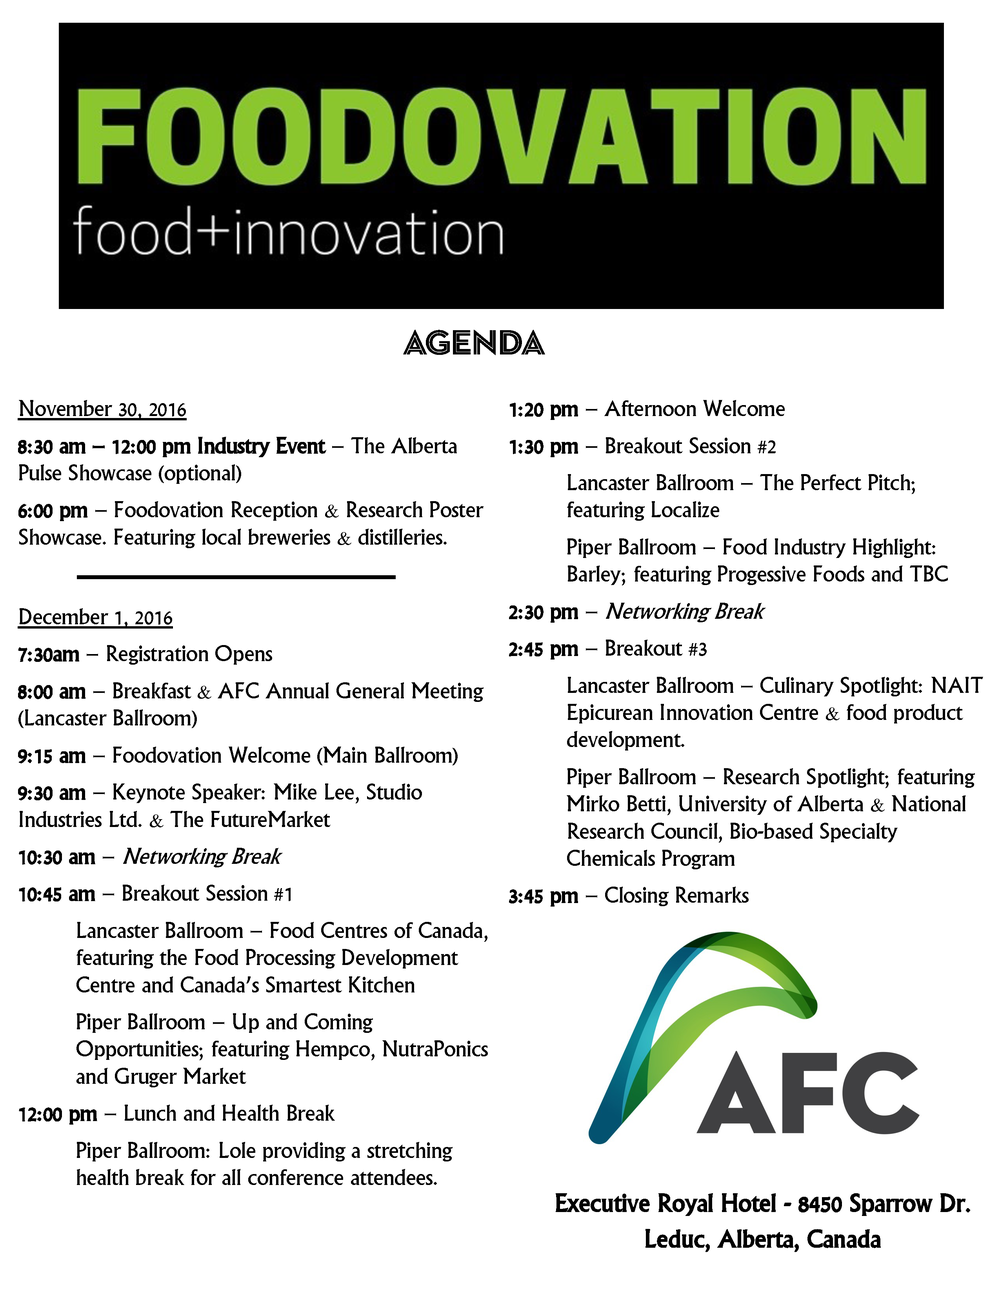 Agenda Foodovation 2016.png